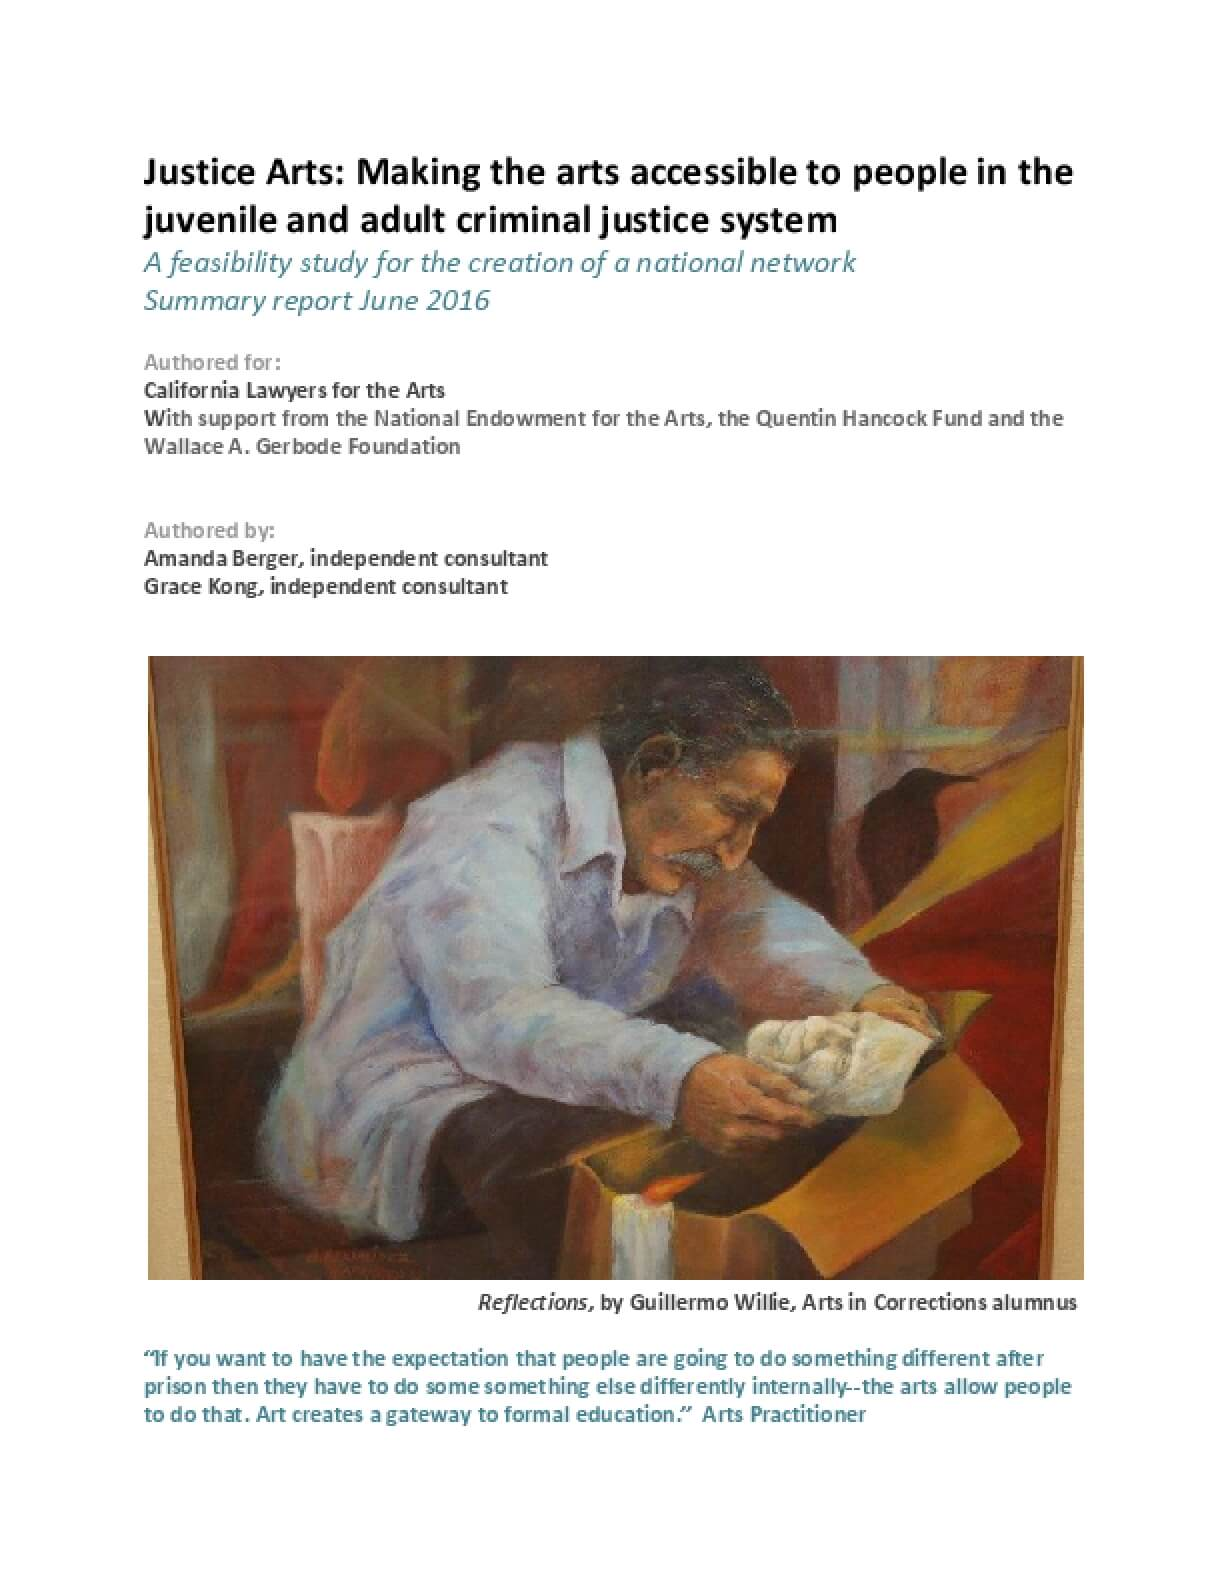 Justice Arts: Making the Arts Accessible to People in the Juvenile and Adult Criminal Justice System - A Feasibility Study for the Creation of a National Network Summary Report June 2016